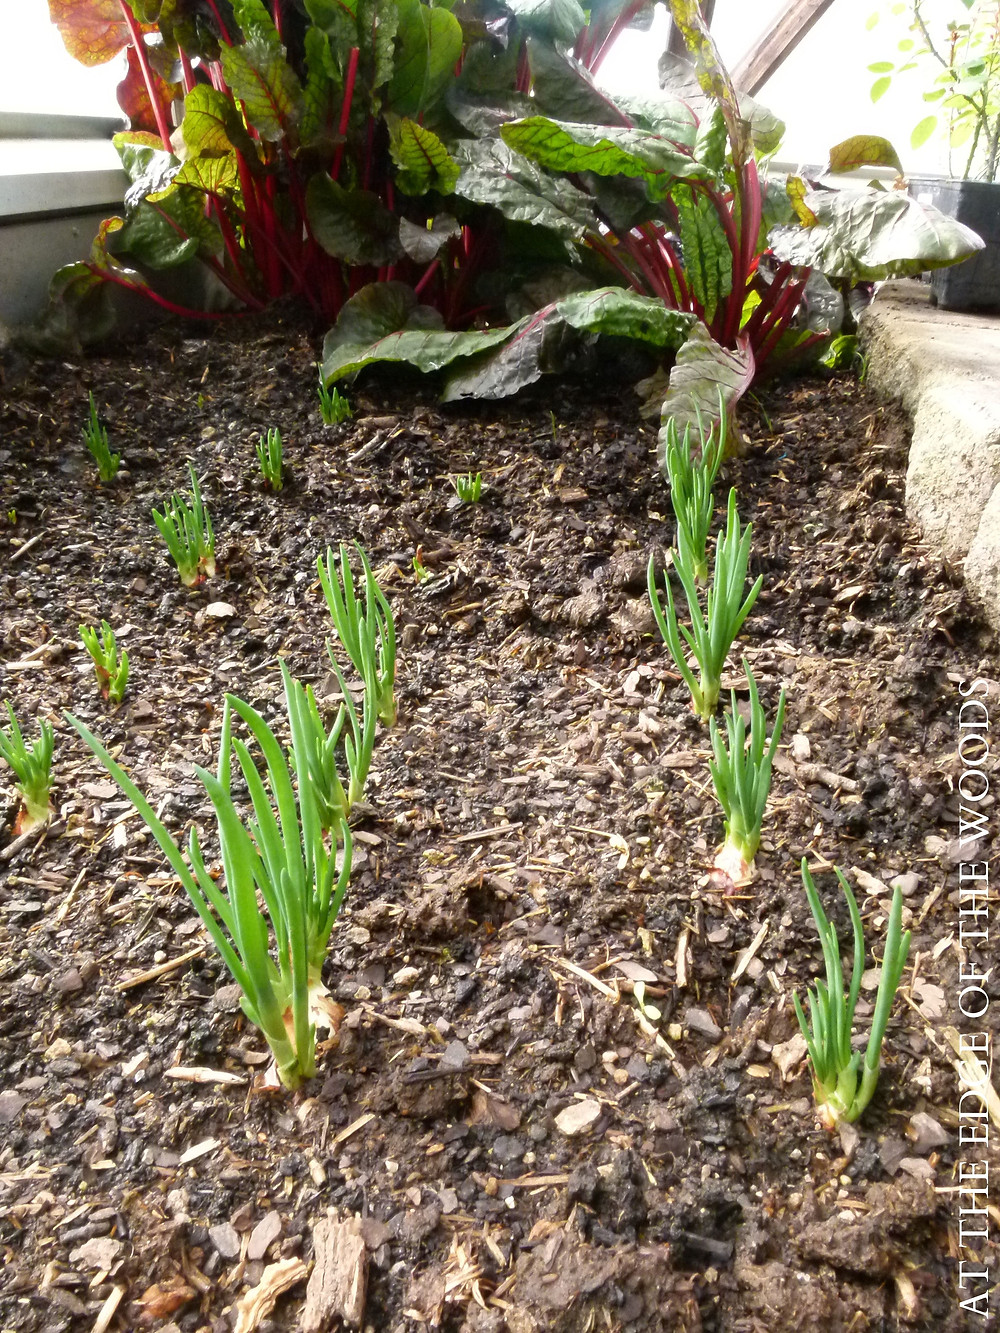 shallots and Swiss chard growing in the greenhouse